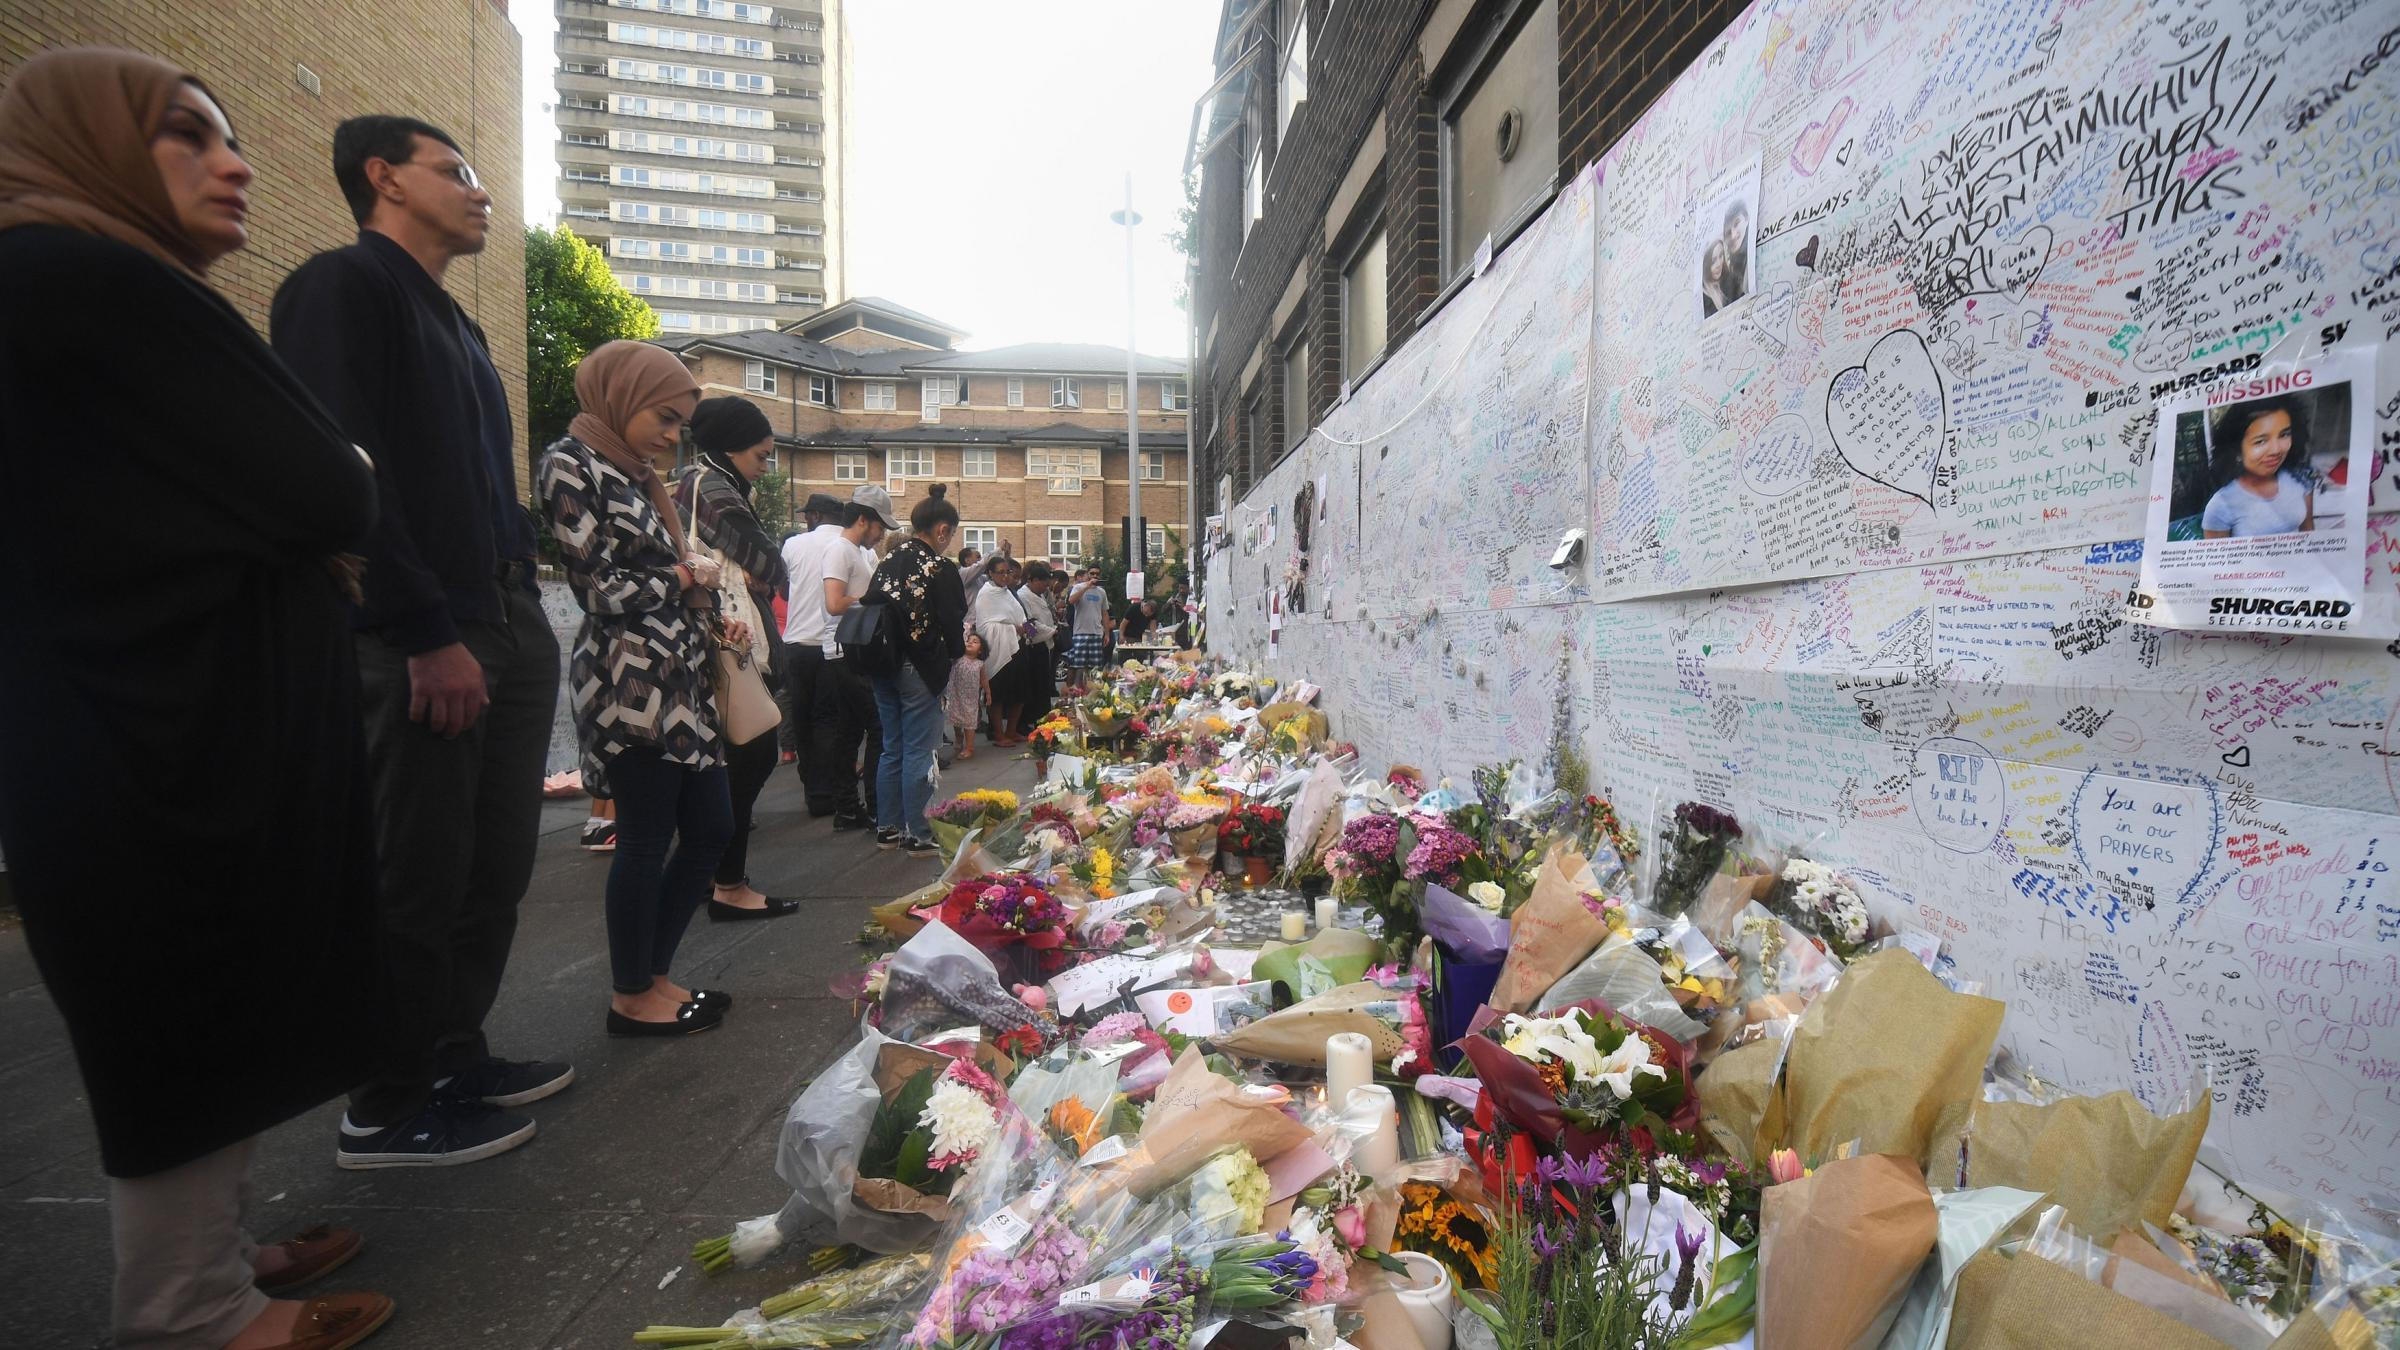 London fire: Police say 58 people assumed dead in tower block